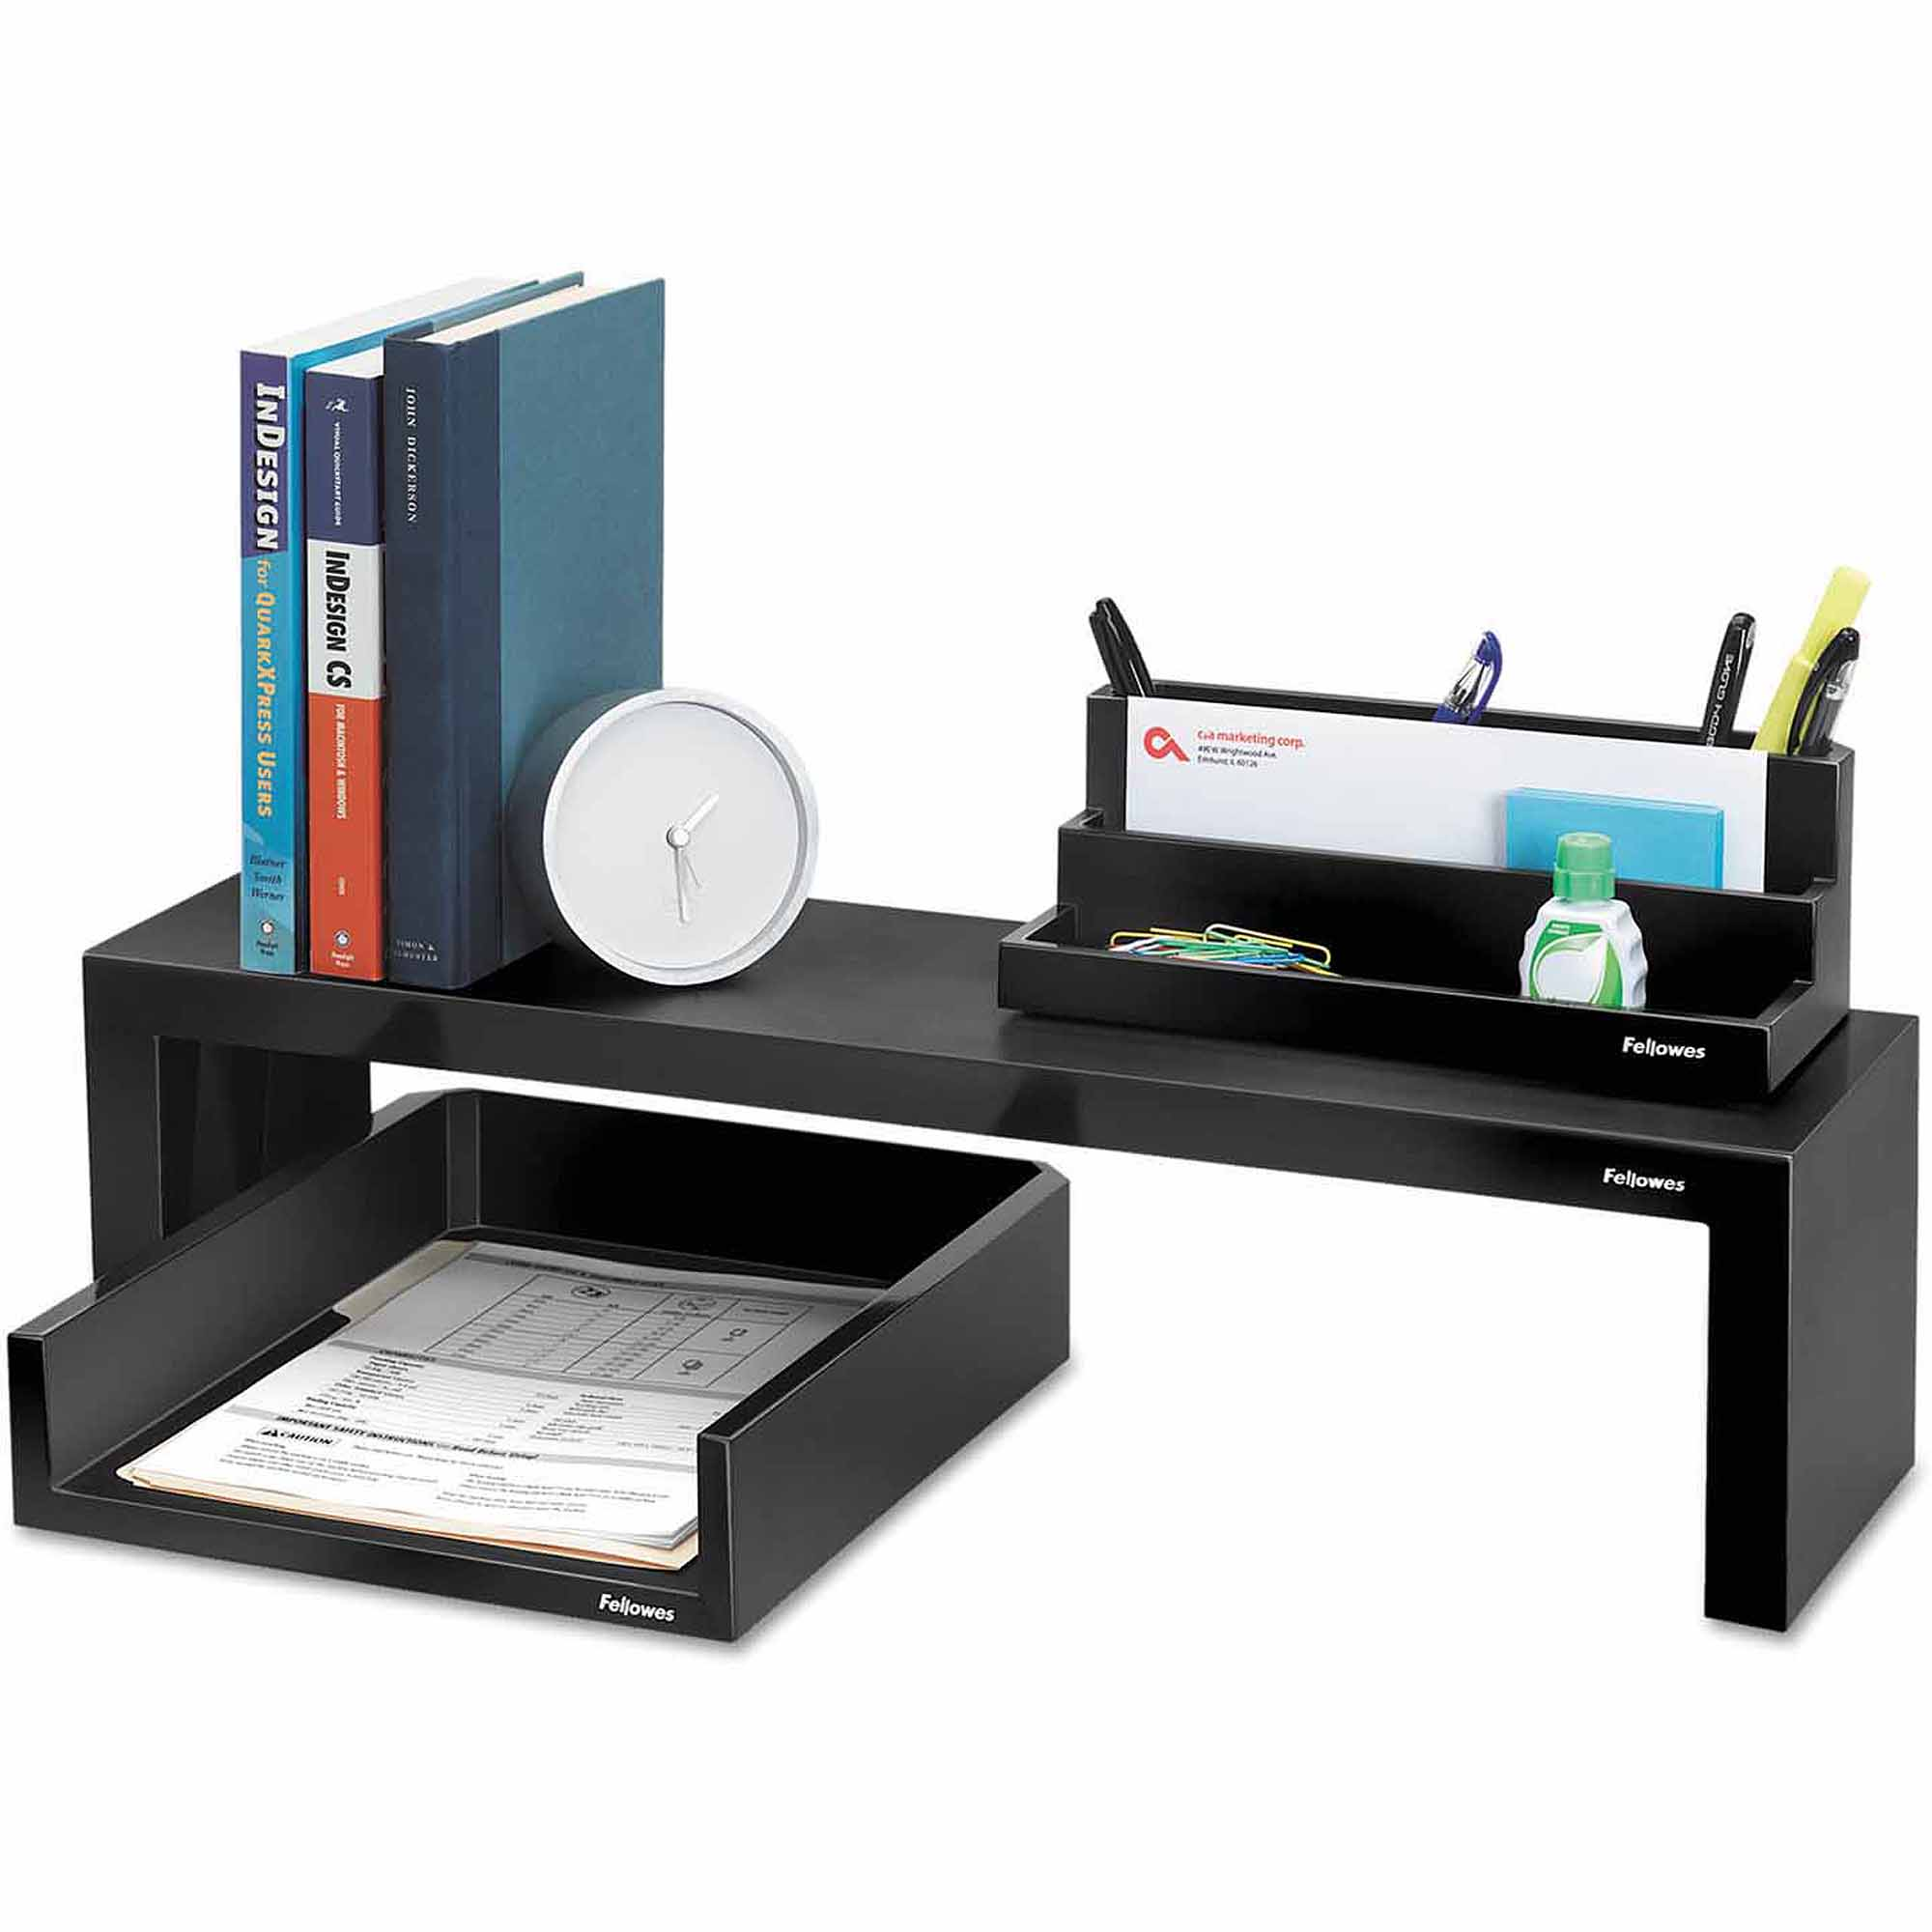 "Fellowes Designer Suites Shelf, 26"" x 7"" x 6.75"", Black Pearl"